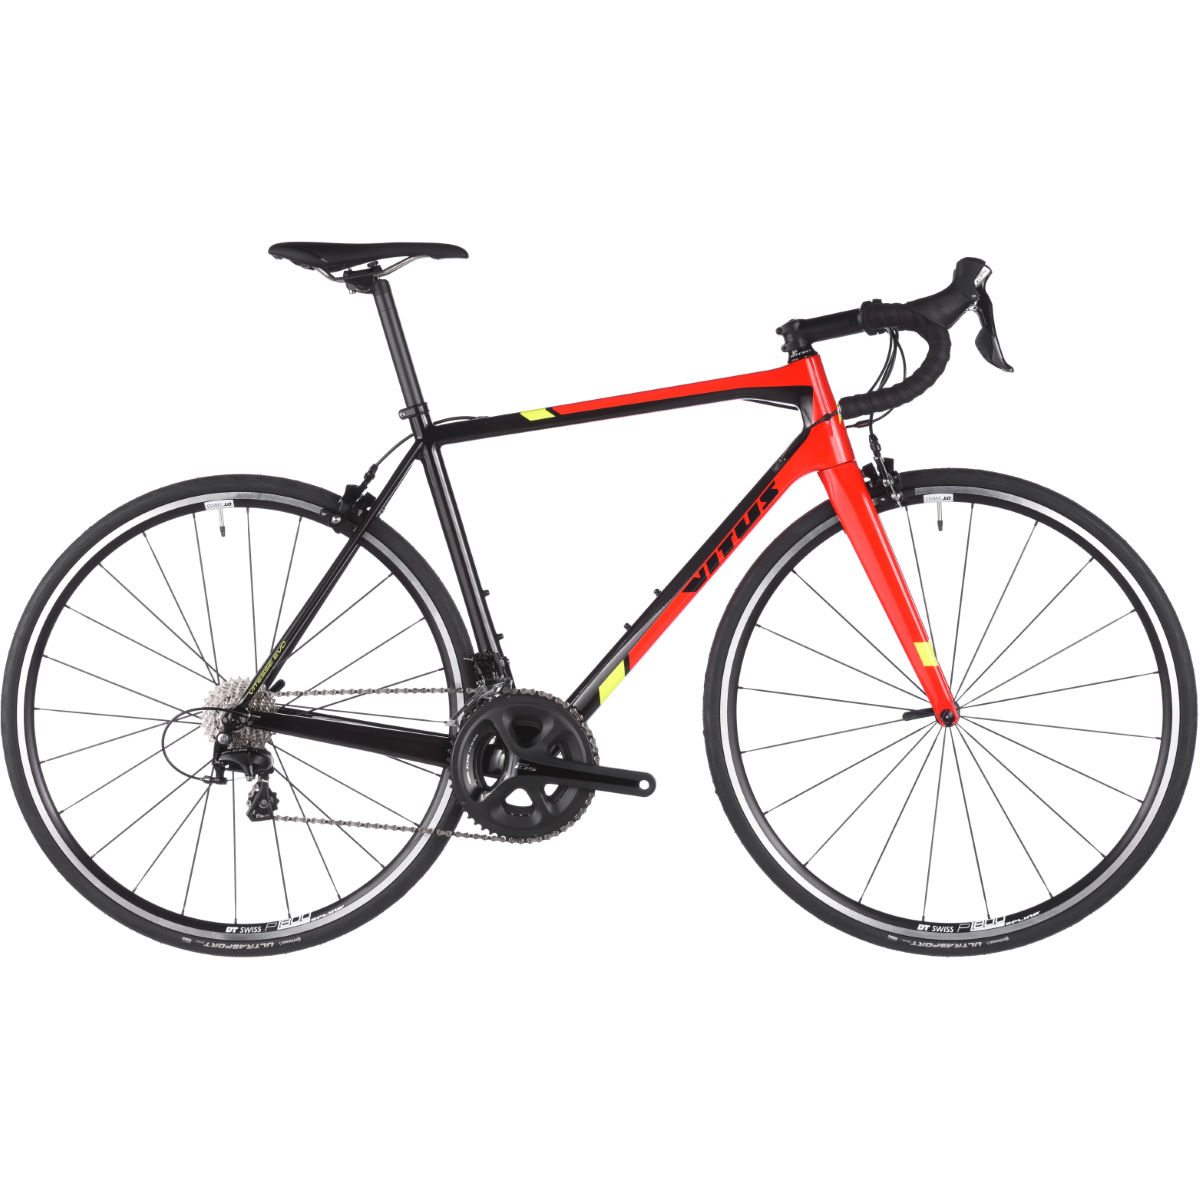 Vitus Vitesse Evo (105 - 2018) Road Bike